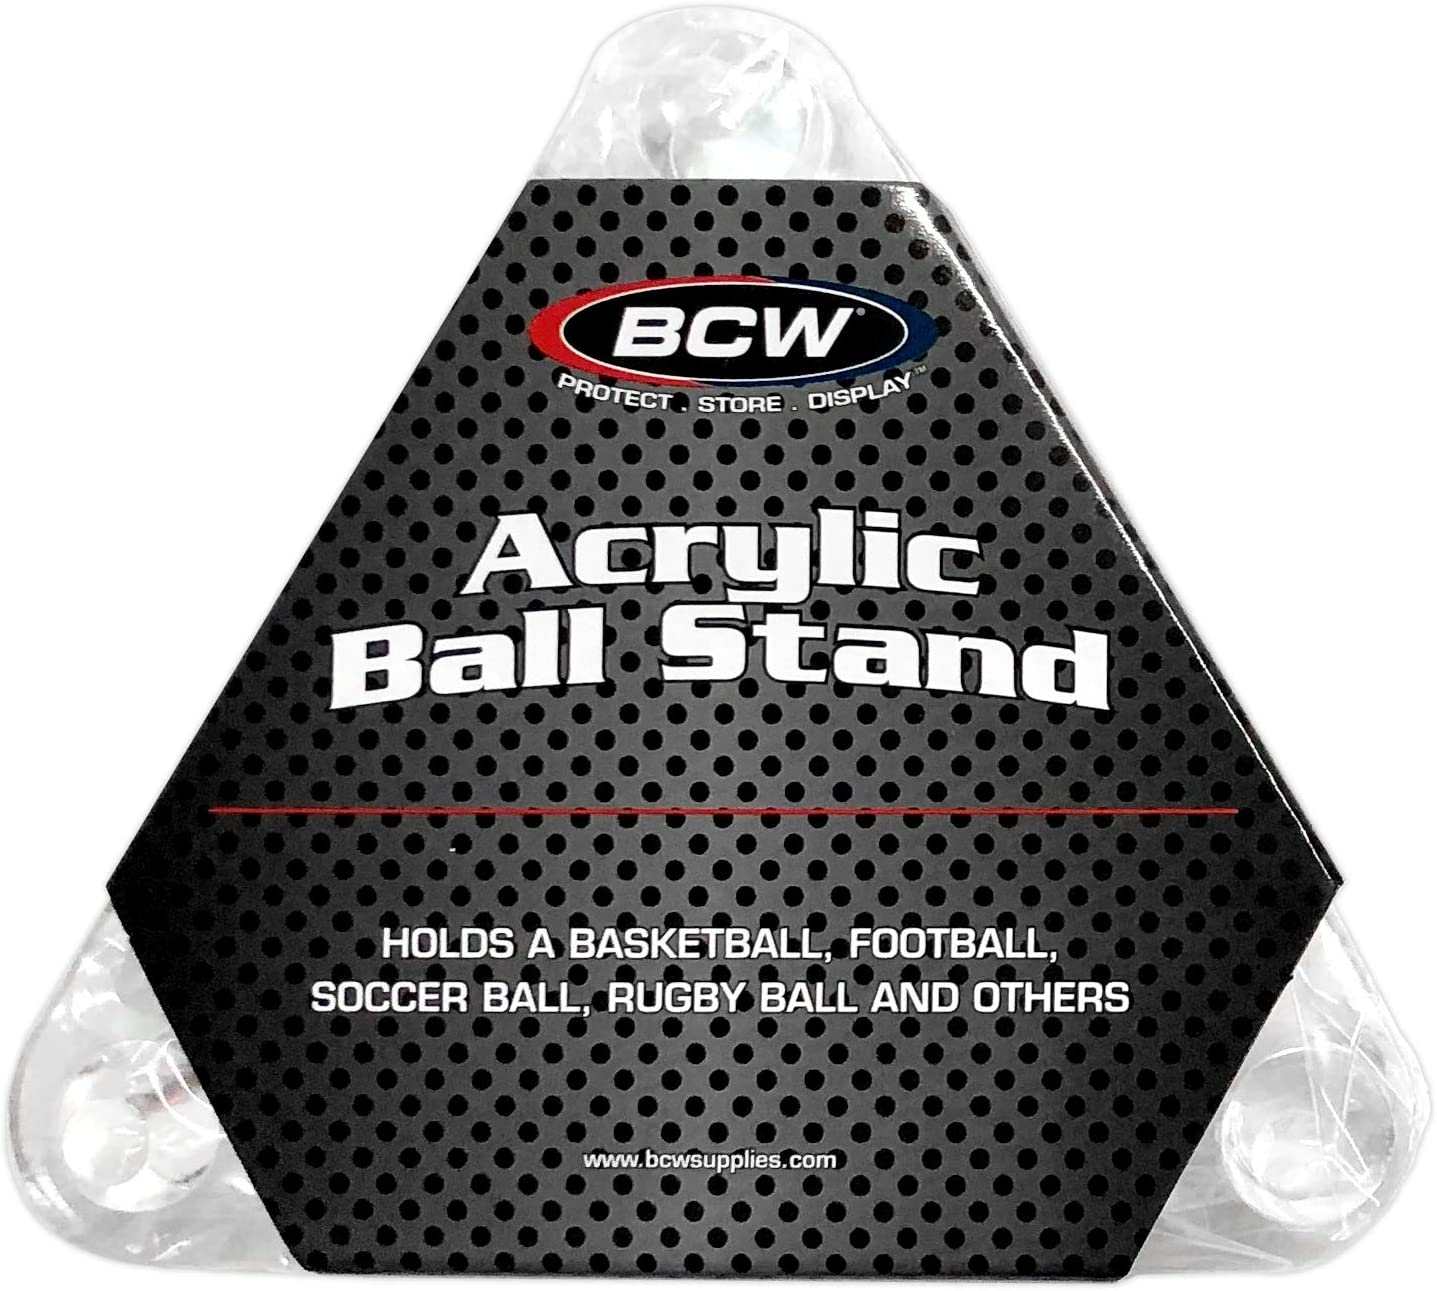 2-Pack Volleyball or Soccer Ball Hold Football BCW Deluxe Acrylic Ball Stand Display Stand or Holder Basketball